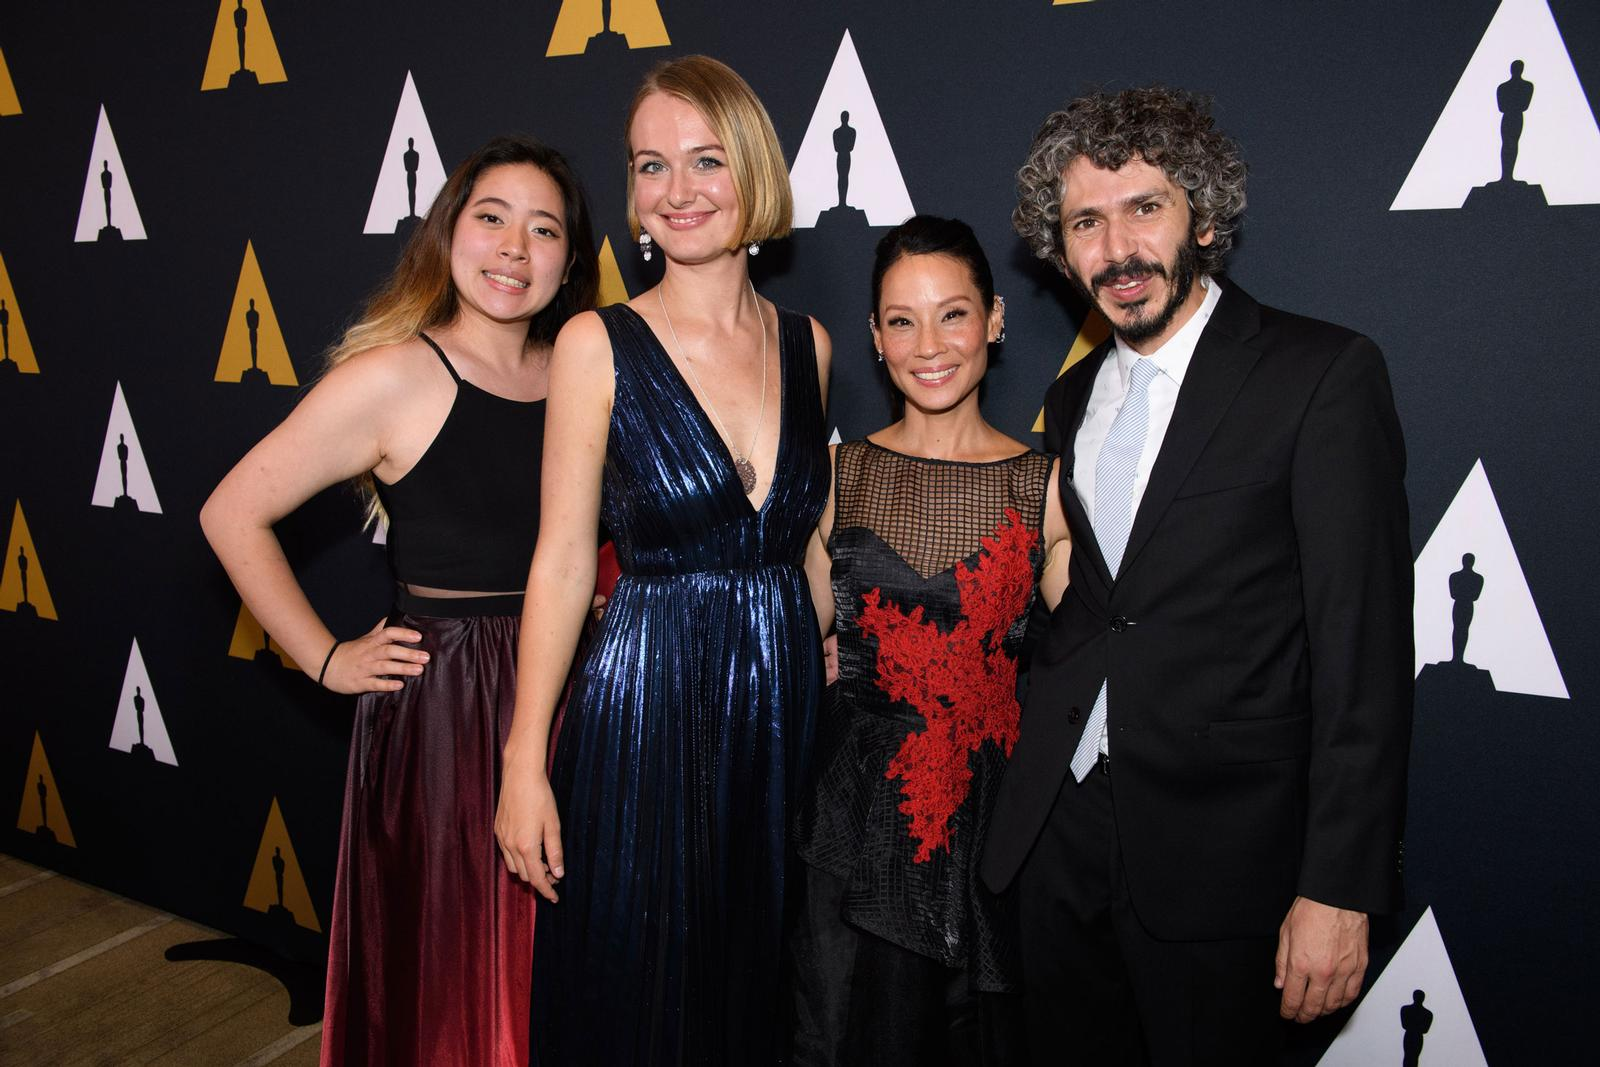 Alicja Jasina (second from left) at the Student Academy Award